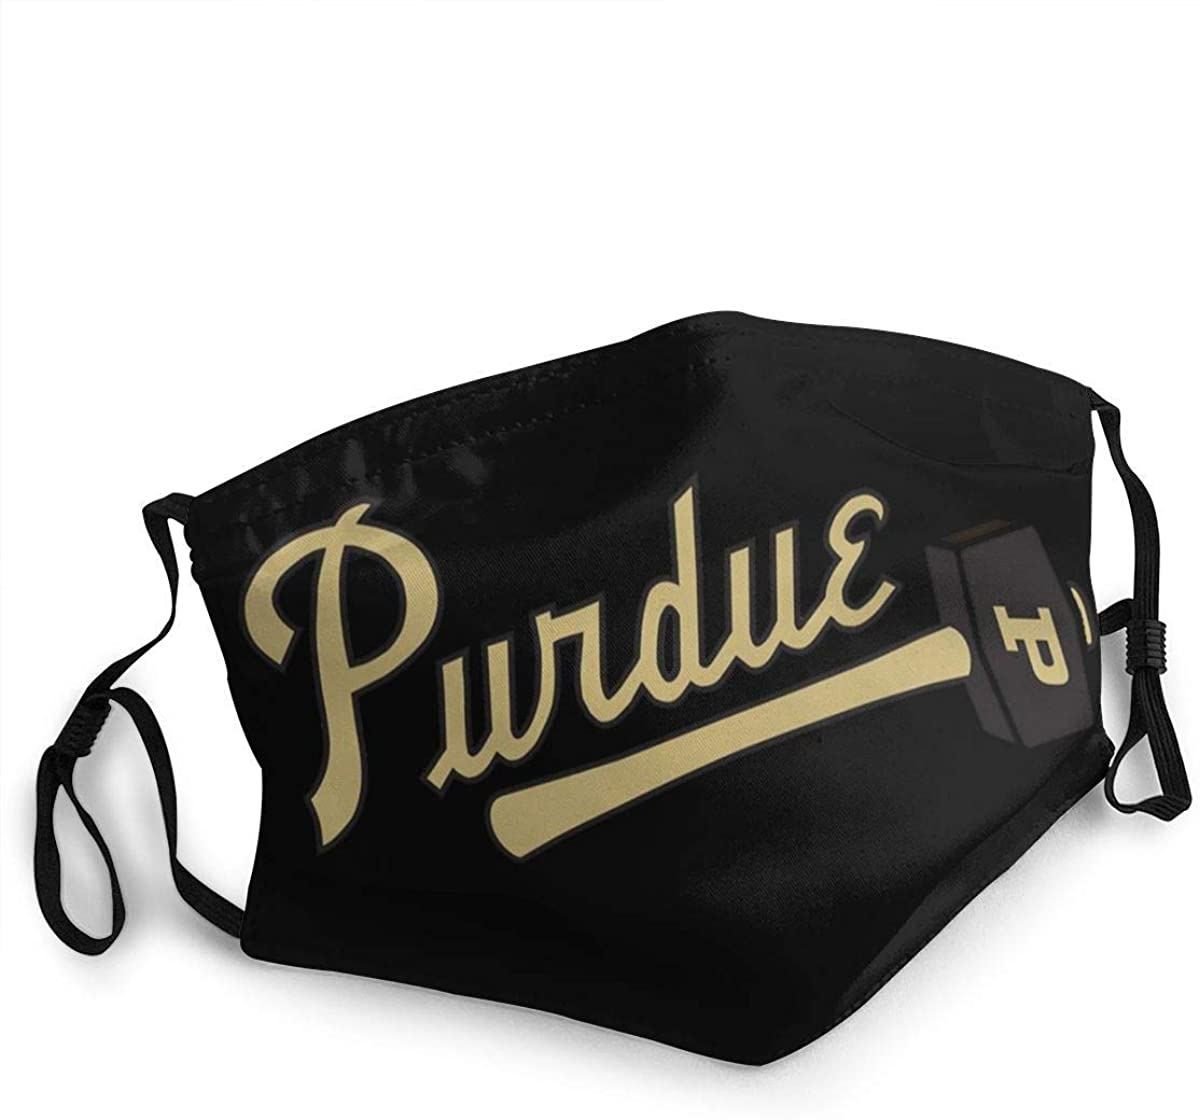 Dust Face Mask Cover Cloth Breathable Reusable Graphic Printed Dust-Proof with Purdue Boilermakers Adjustable Mouth Masks Suitable for Home, Office, Outdoor - Made in USA